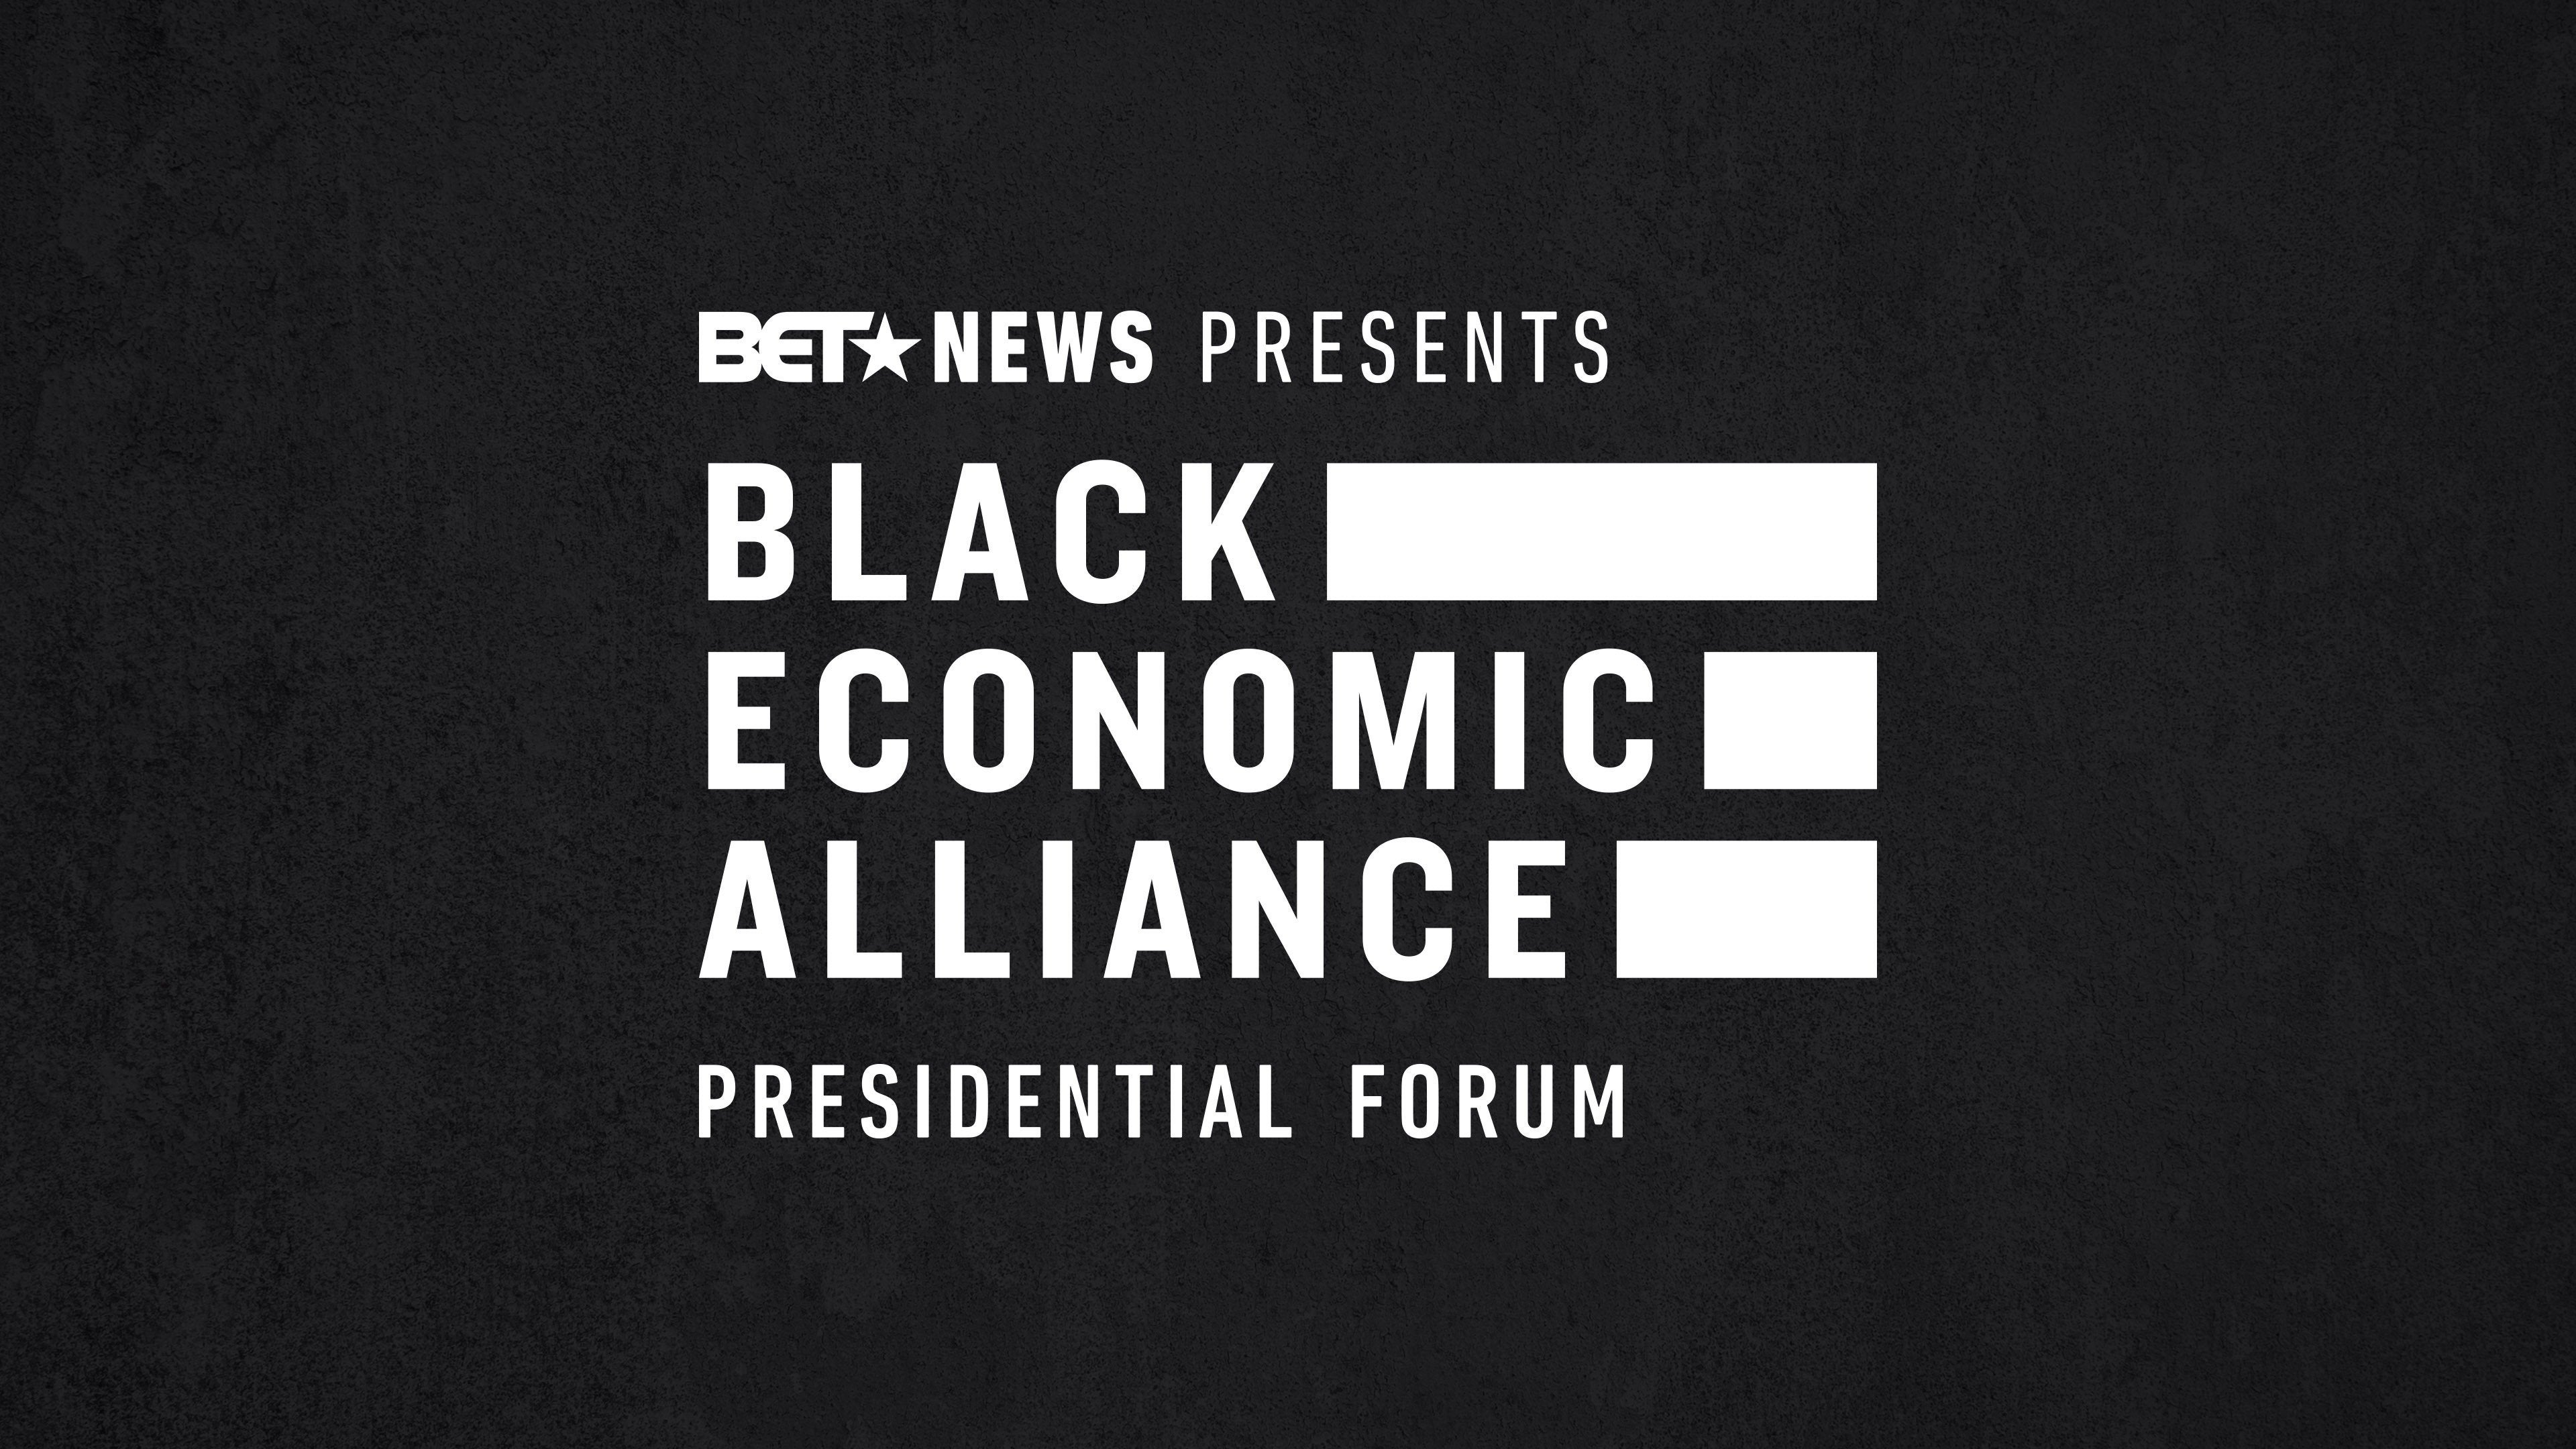 Black Economic Alliance 2020 Presidential Candidate Forum